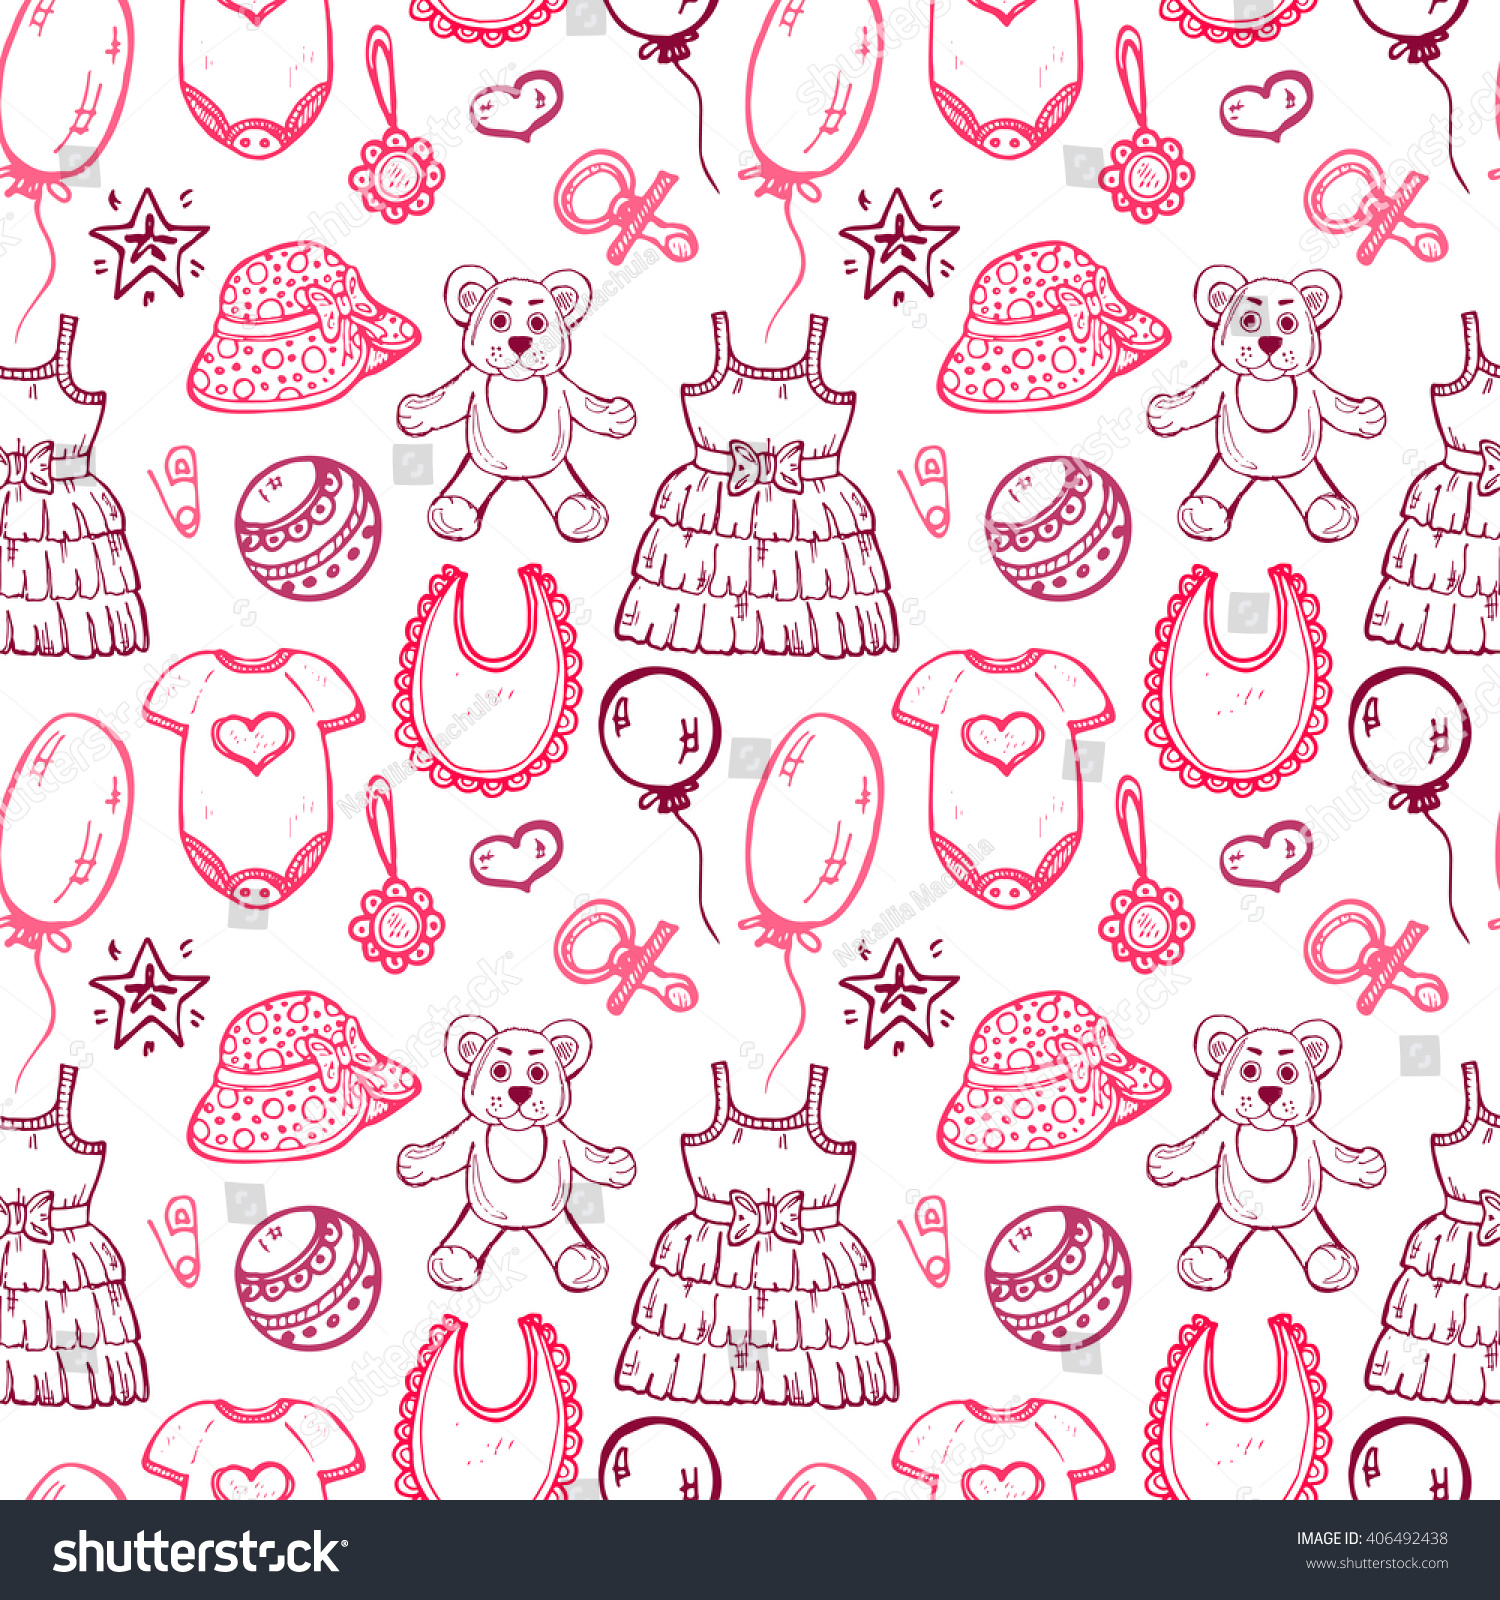 e87abf9c023c Seamless Pattern Cute Hand Drawn Clothes Stock Vector (Royalty Free ...